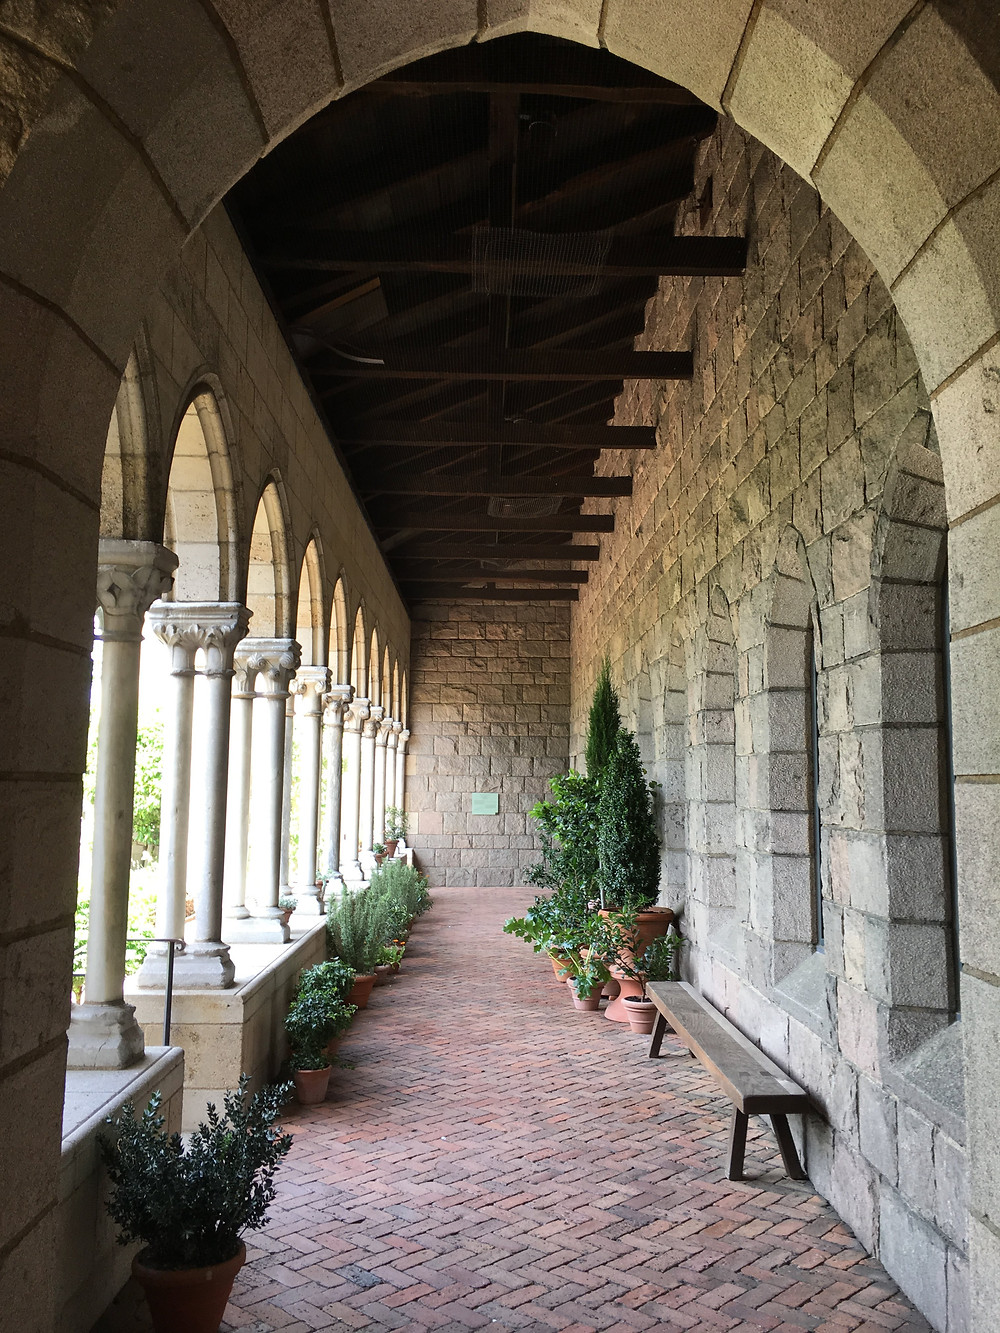 The arcaded walkway that leads to the Met Cloister's Bonnefont Cloister garden